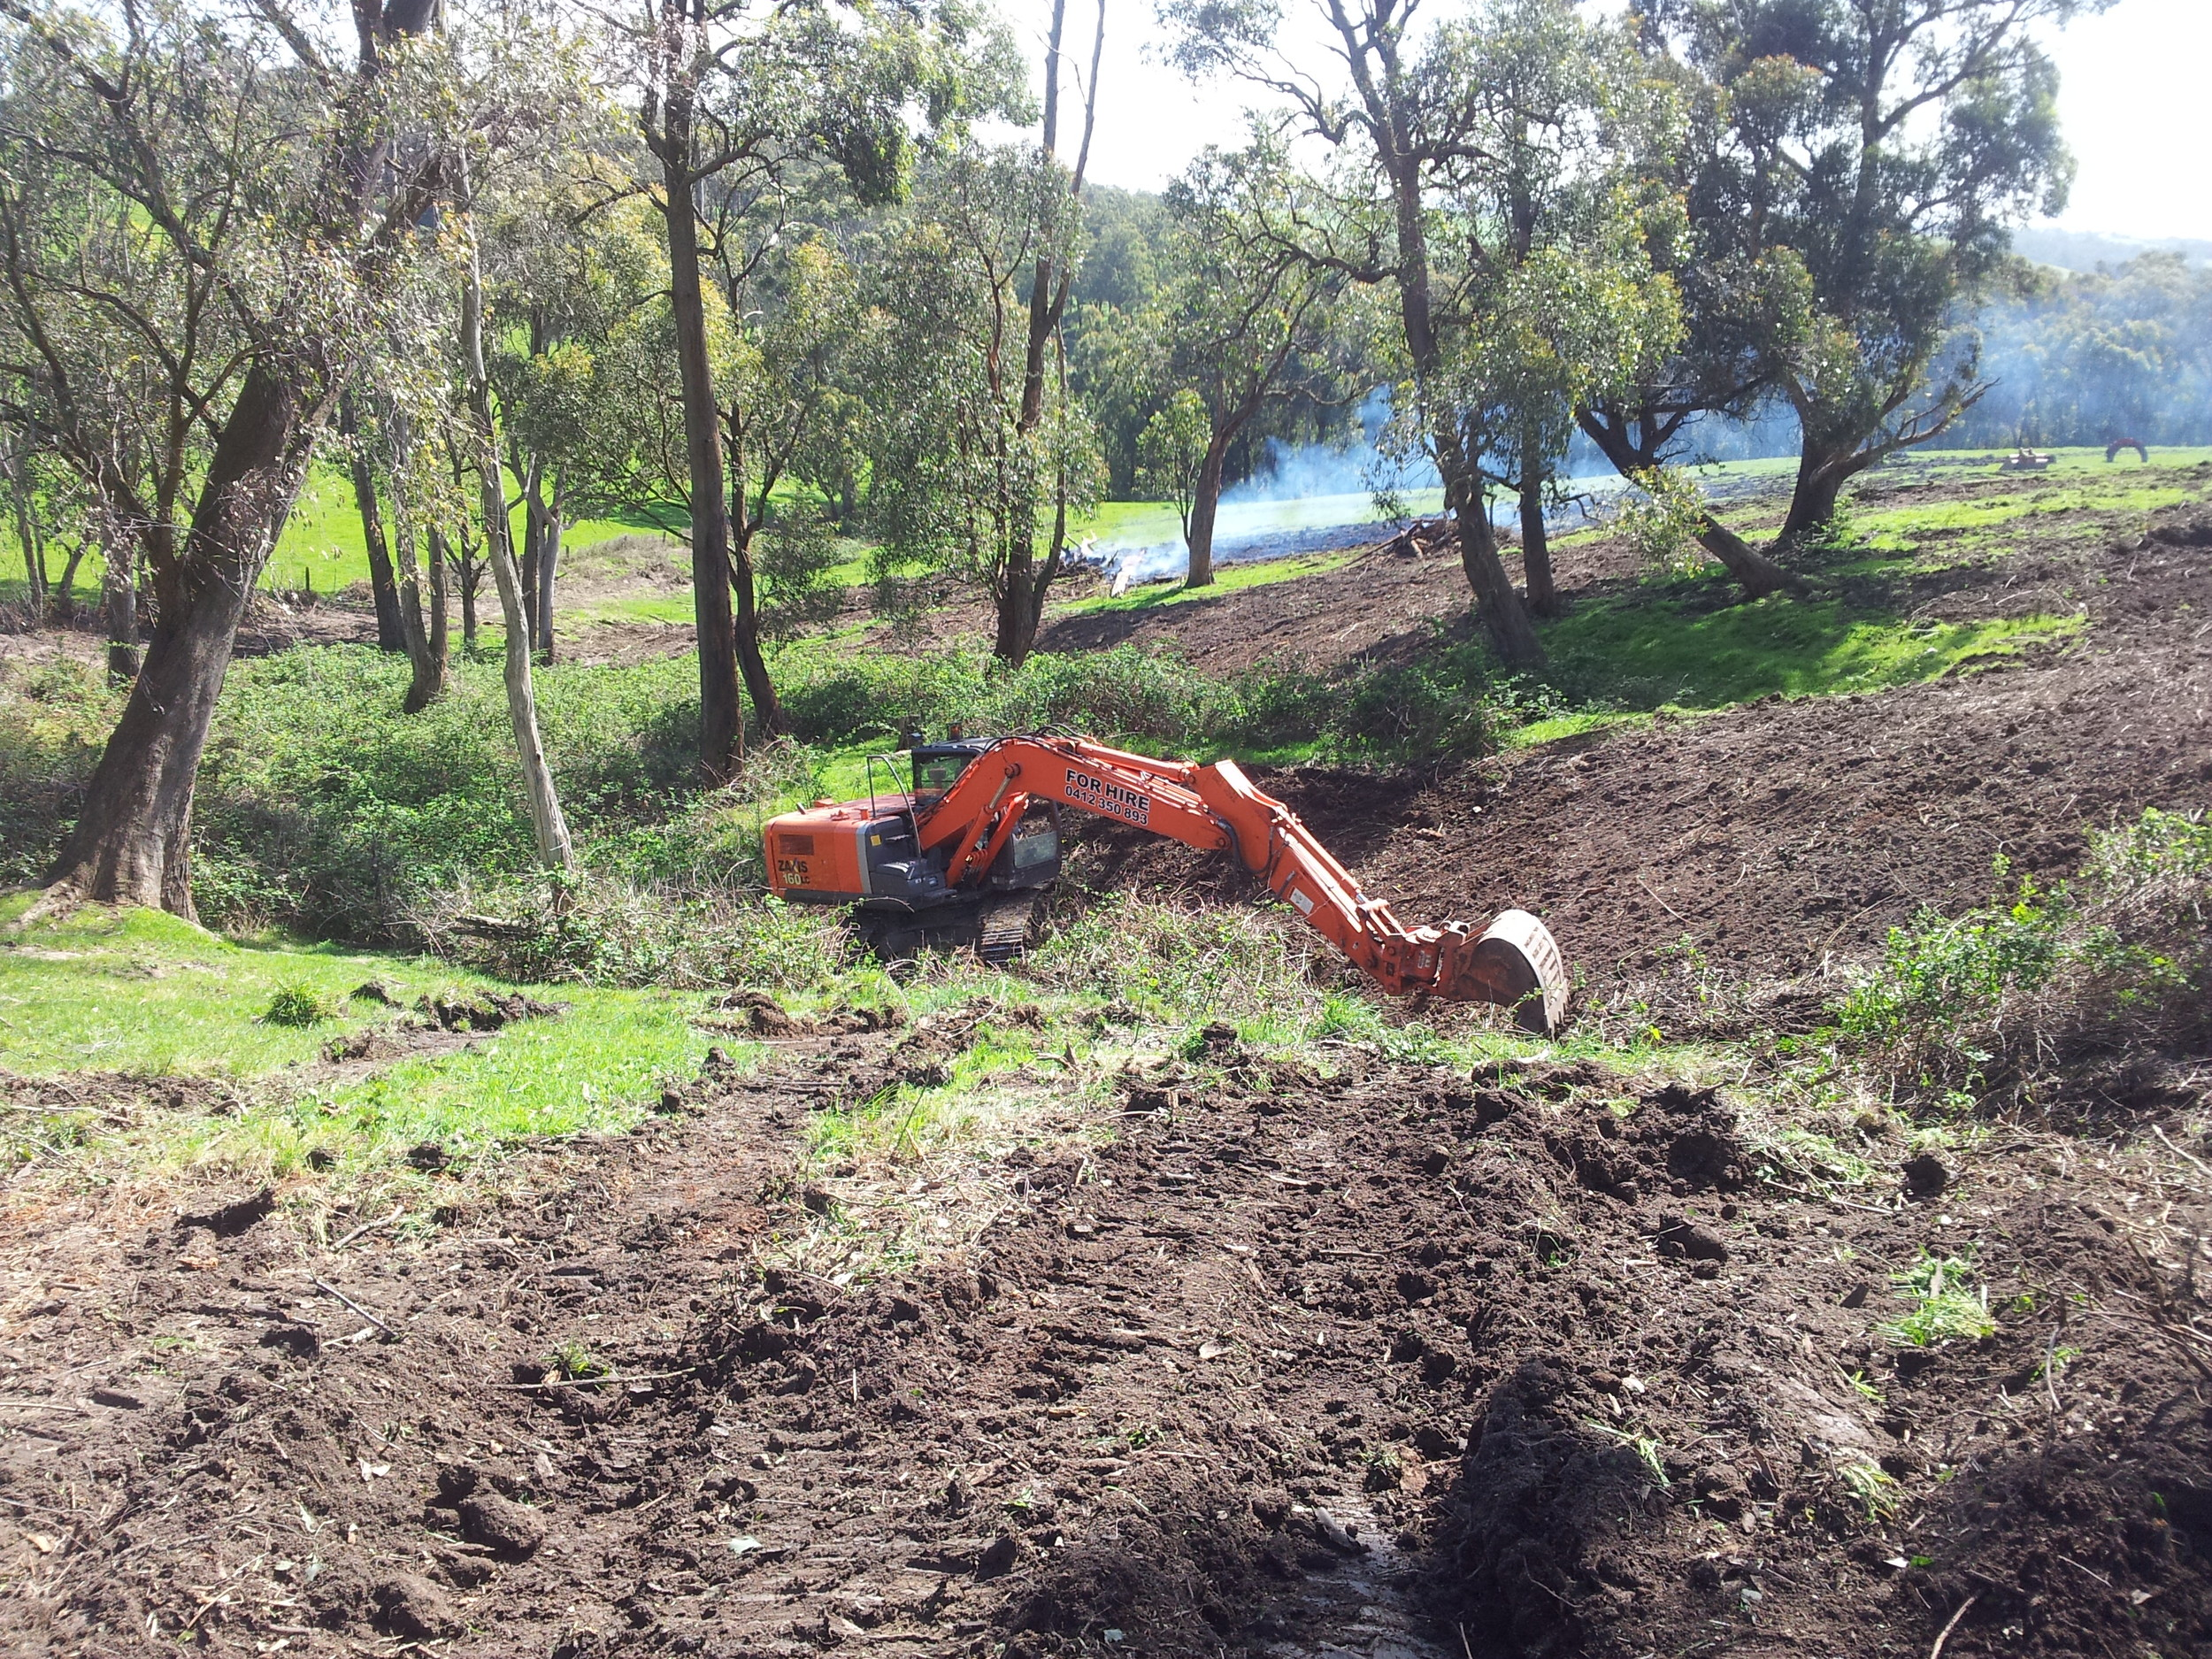 Removal of blackberries, tree stumps and erosion protection.